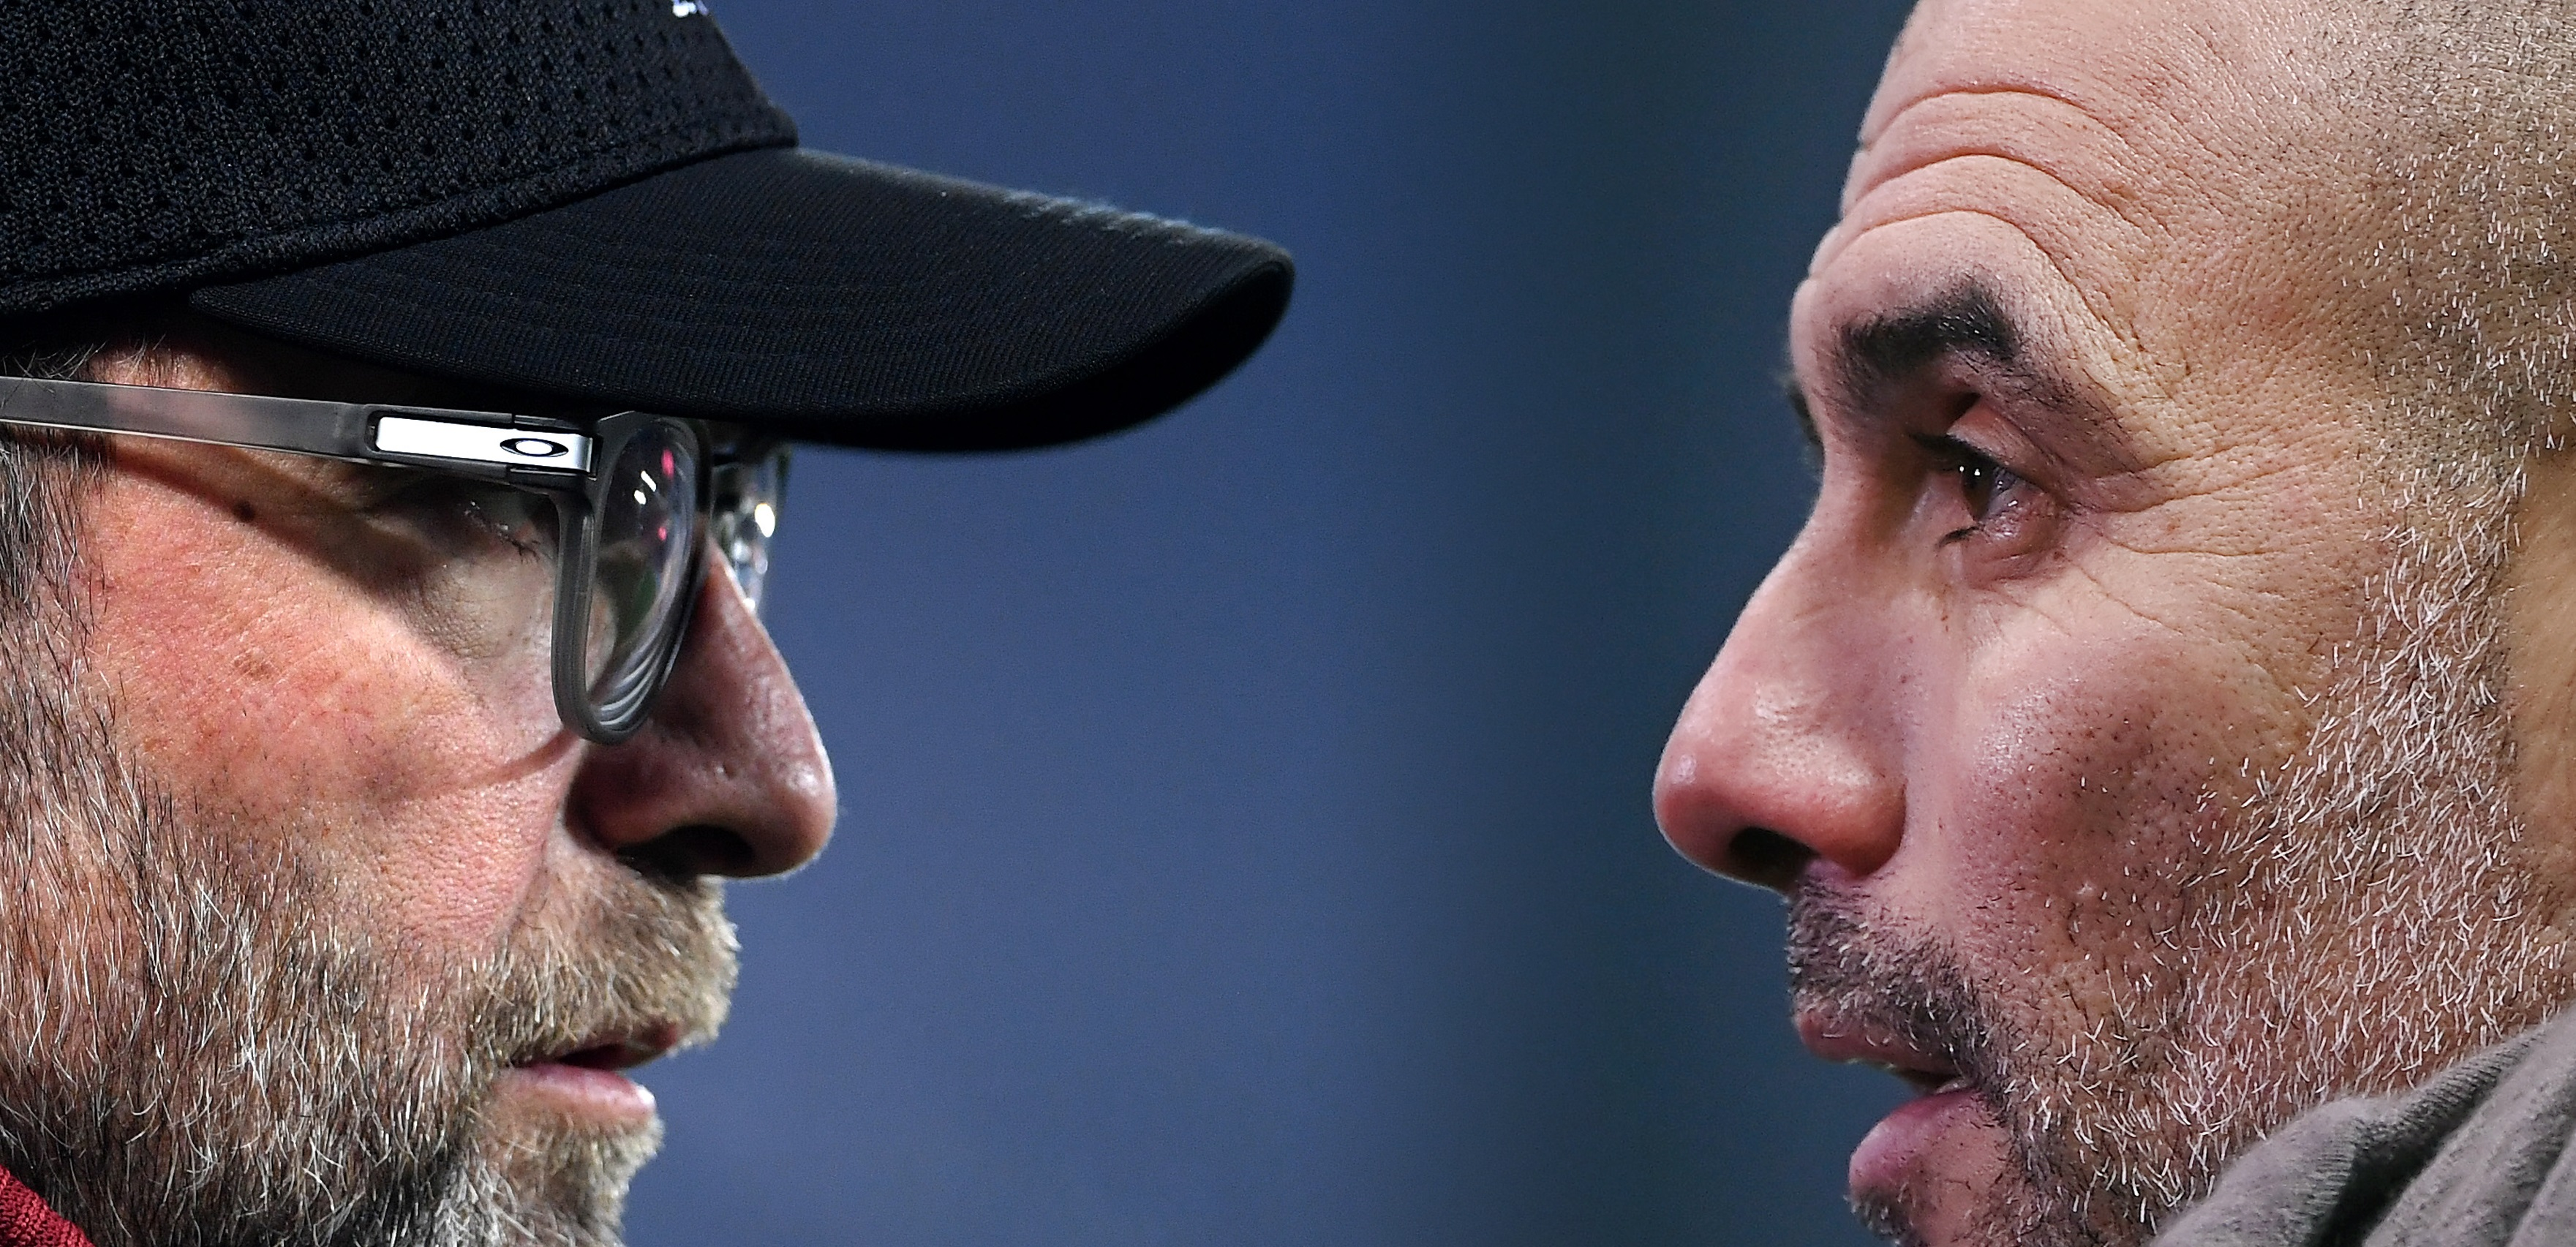 Liverpool & Man City's total points since 2018 are nearly identical but it may clear up the Klopp v Guardiola debate